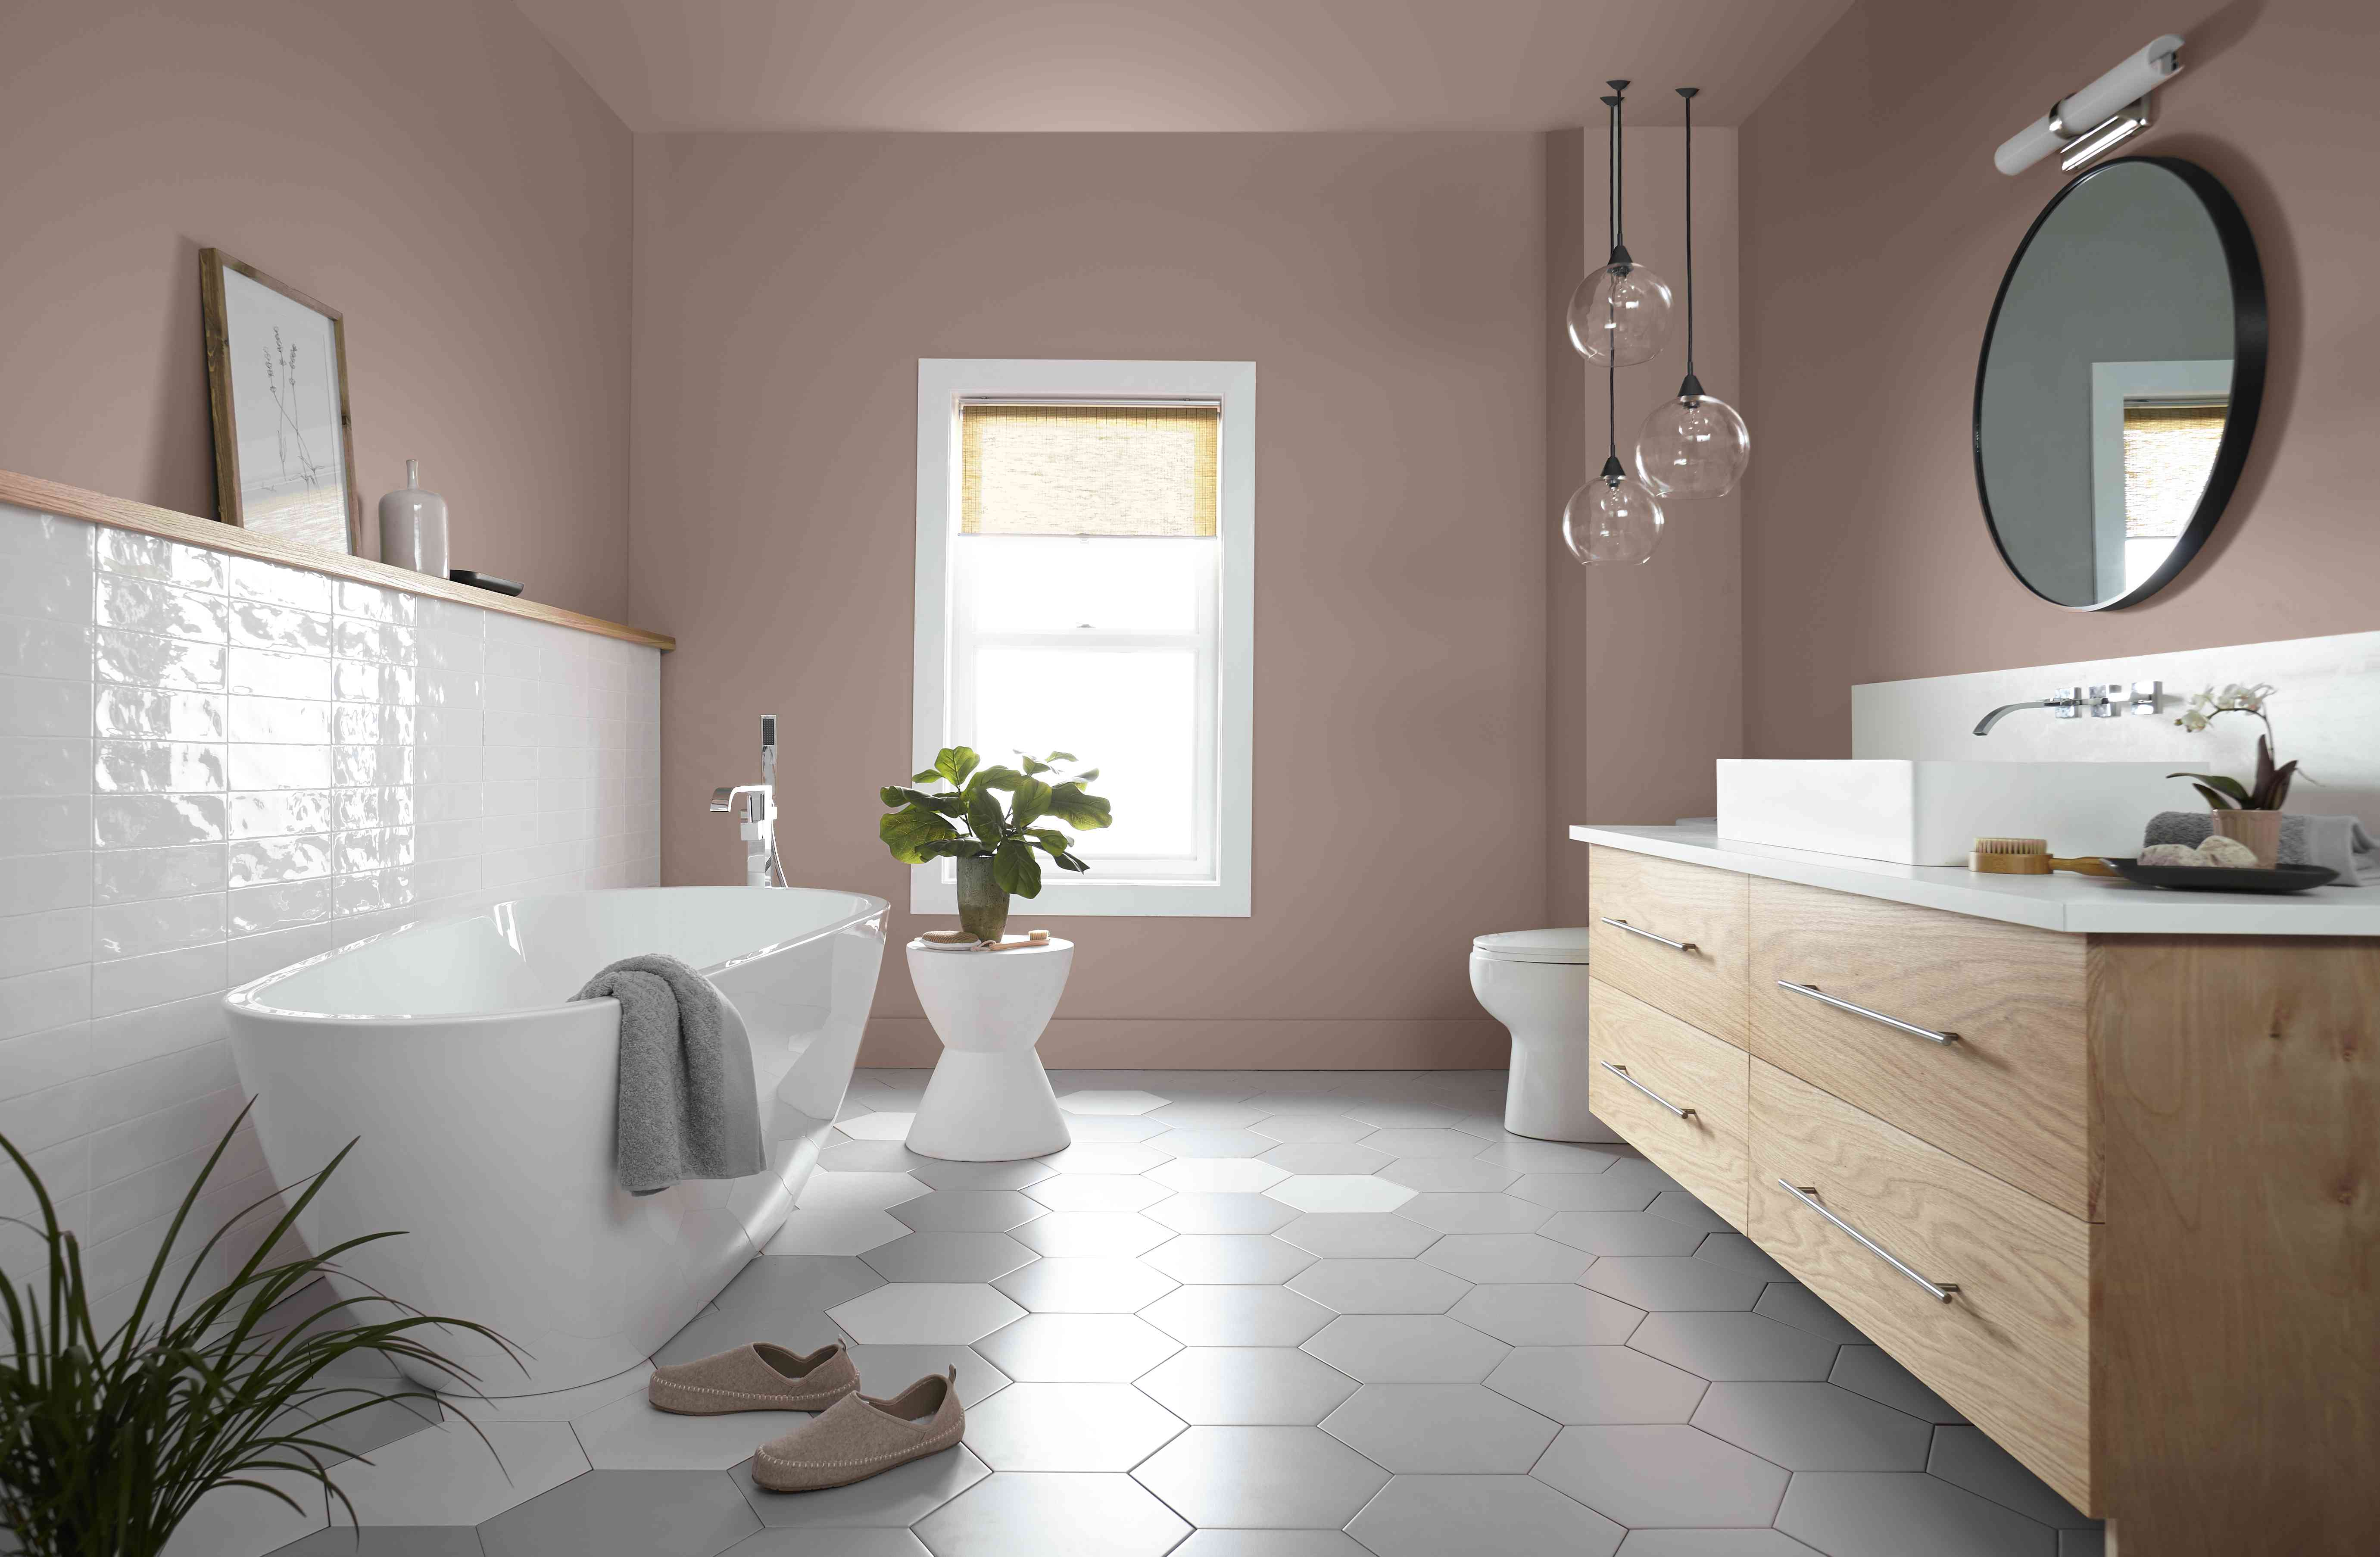 neutral paint on the walls of this bathroom help create a calming effect